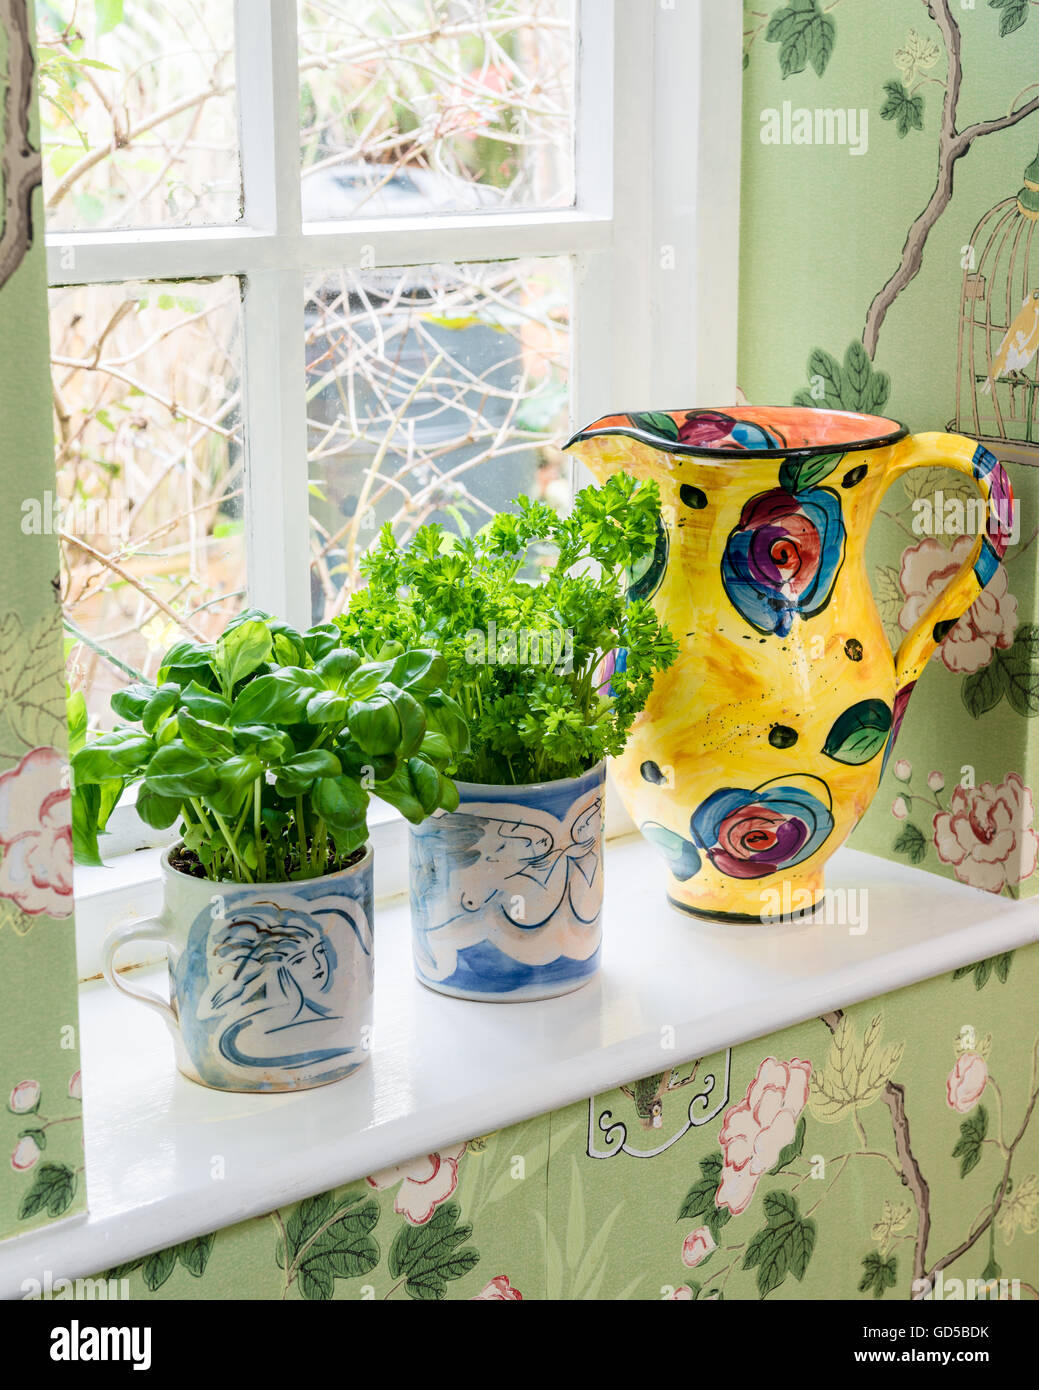 Vibrant coloured jug by Mary Rose Young on window sill with hand painted mugs by Julia Quigley holding basil and - Stock Image